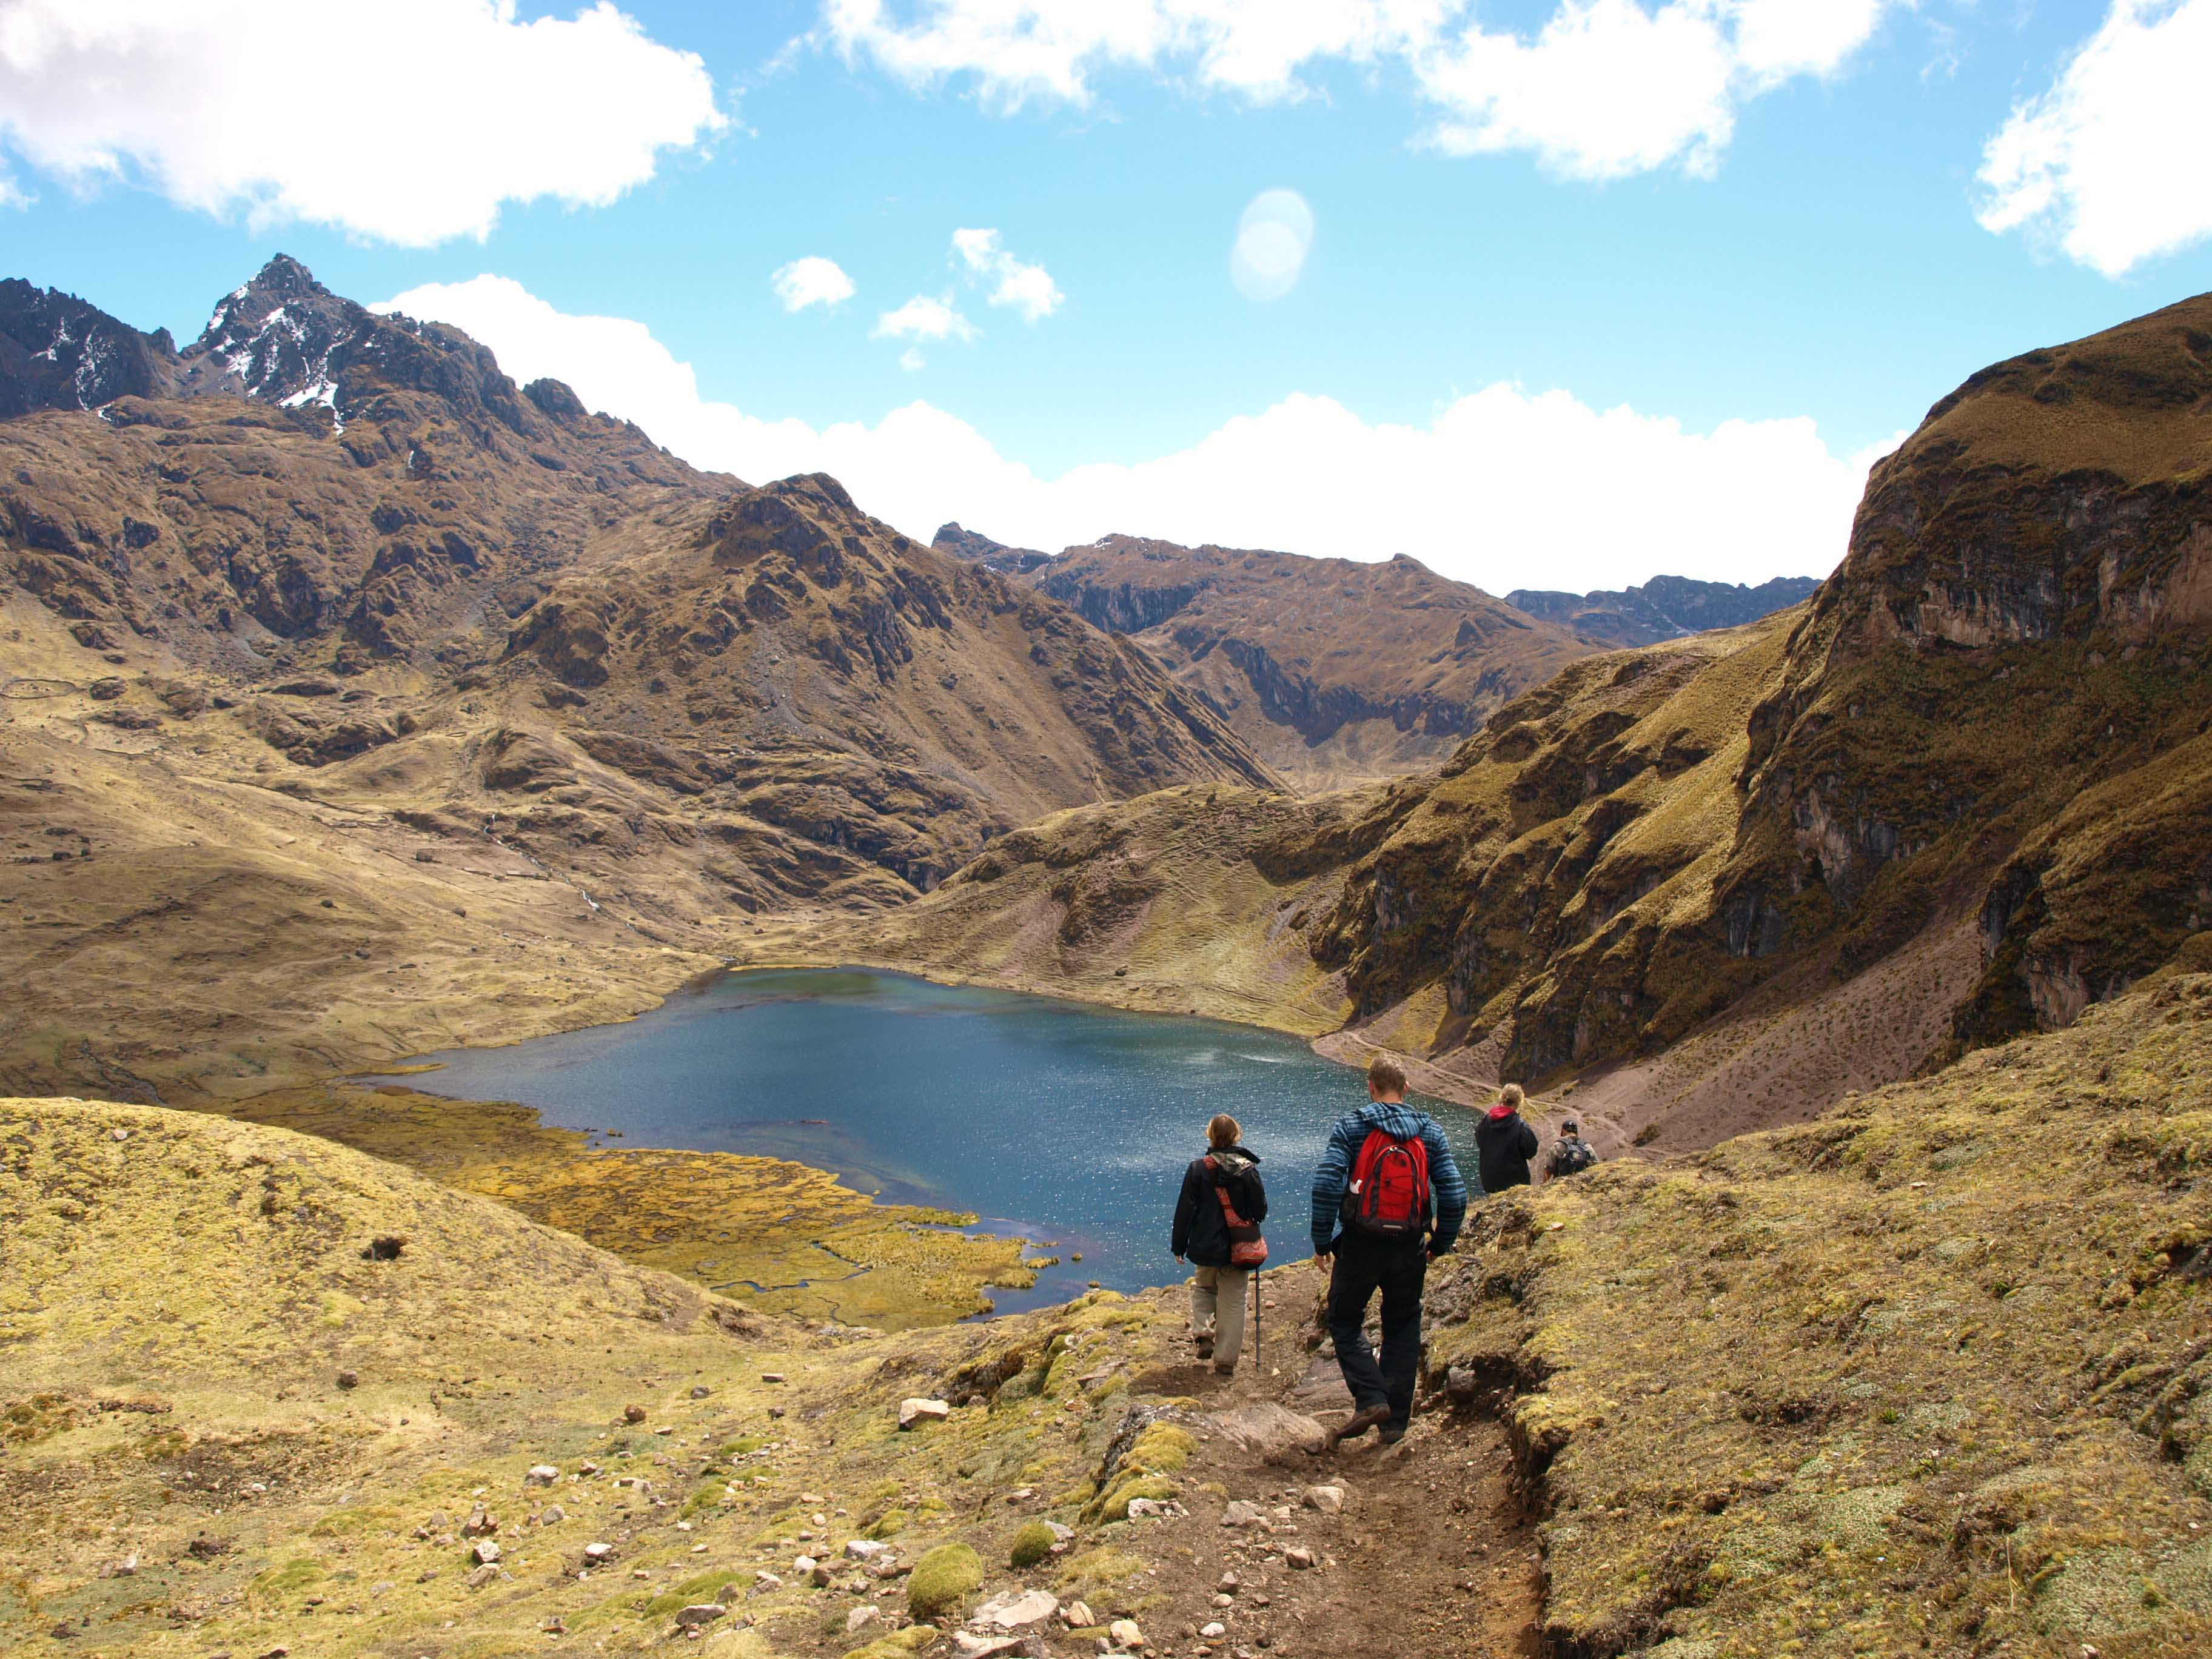 Peru Treks to Machu Picchu: What Are Your Options? | ...en Perú - Travel Culture History News